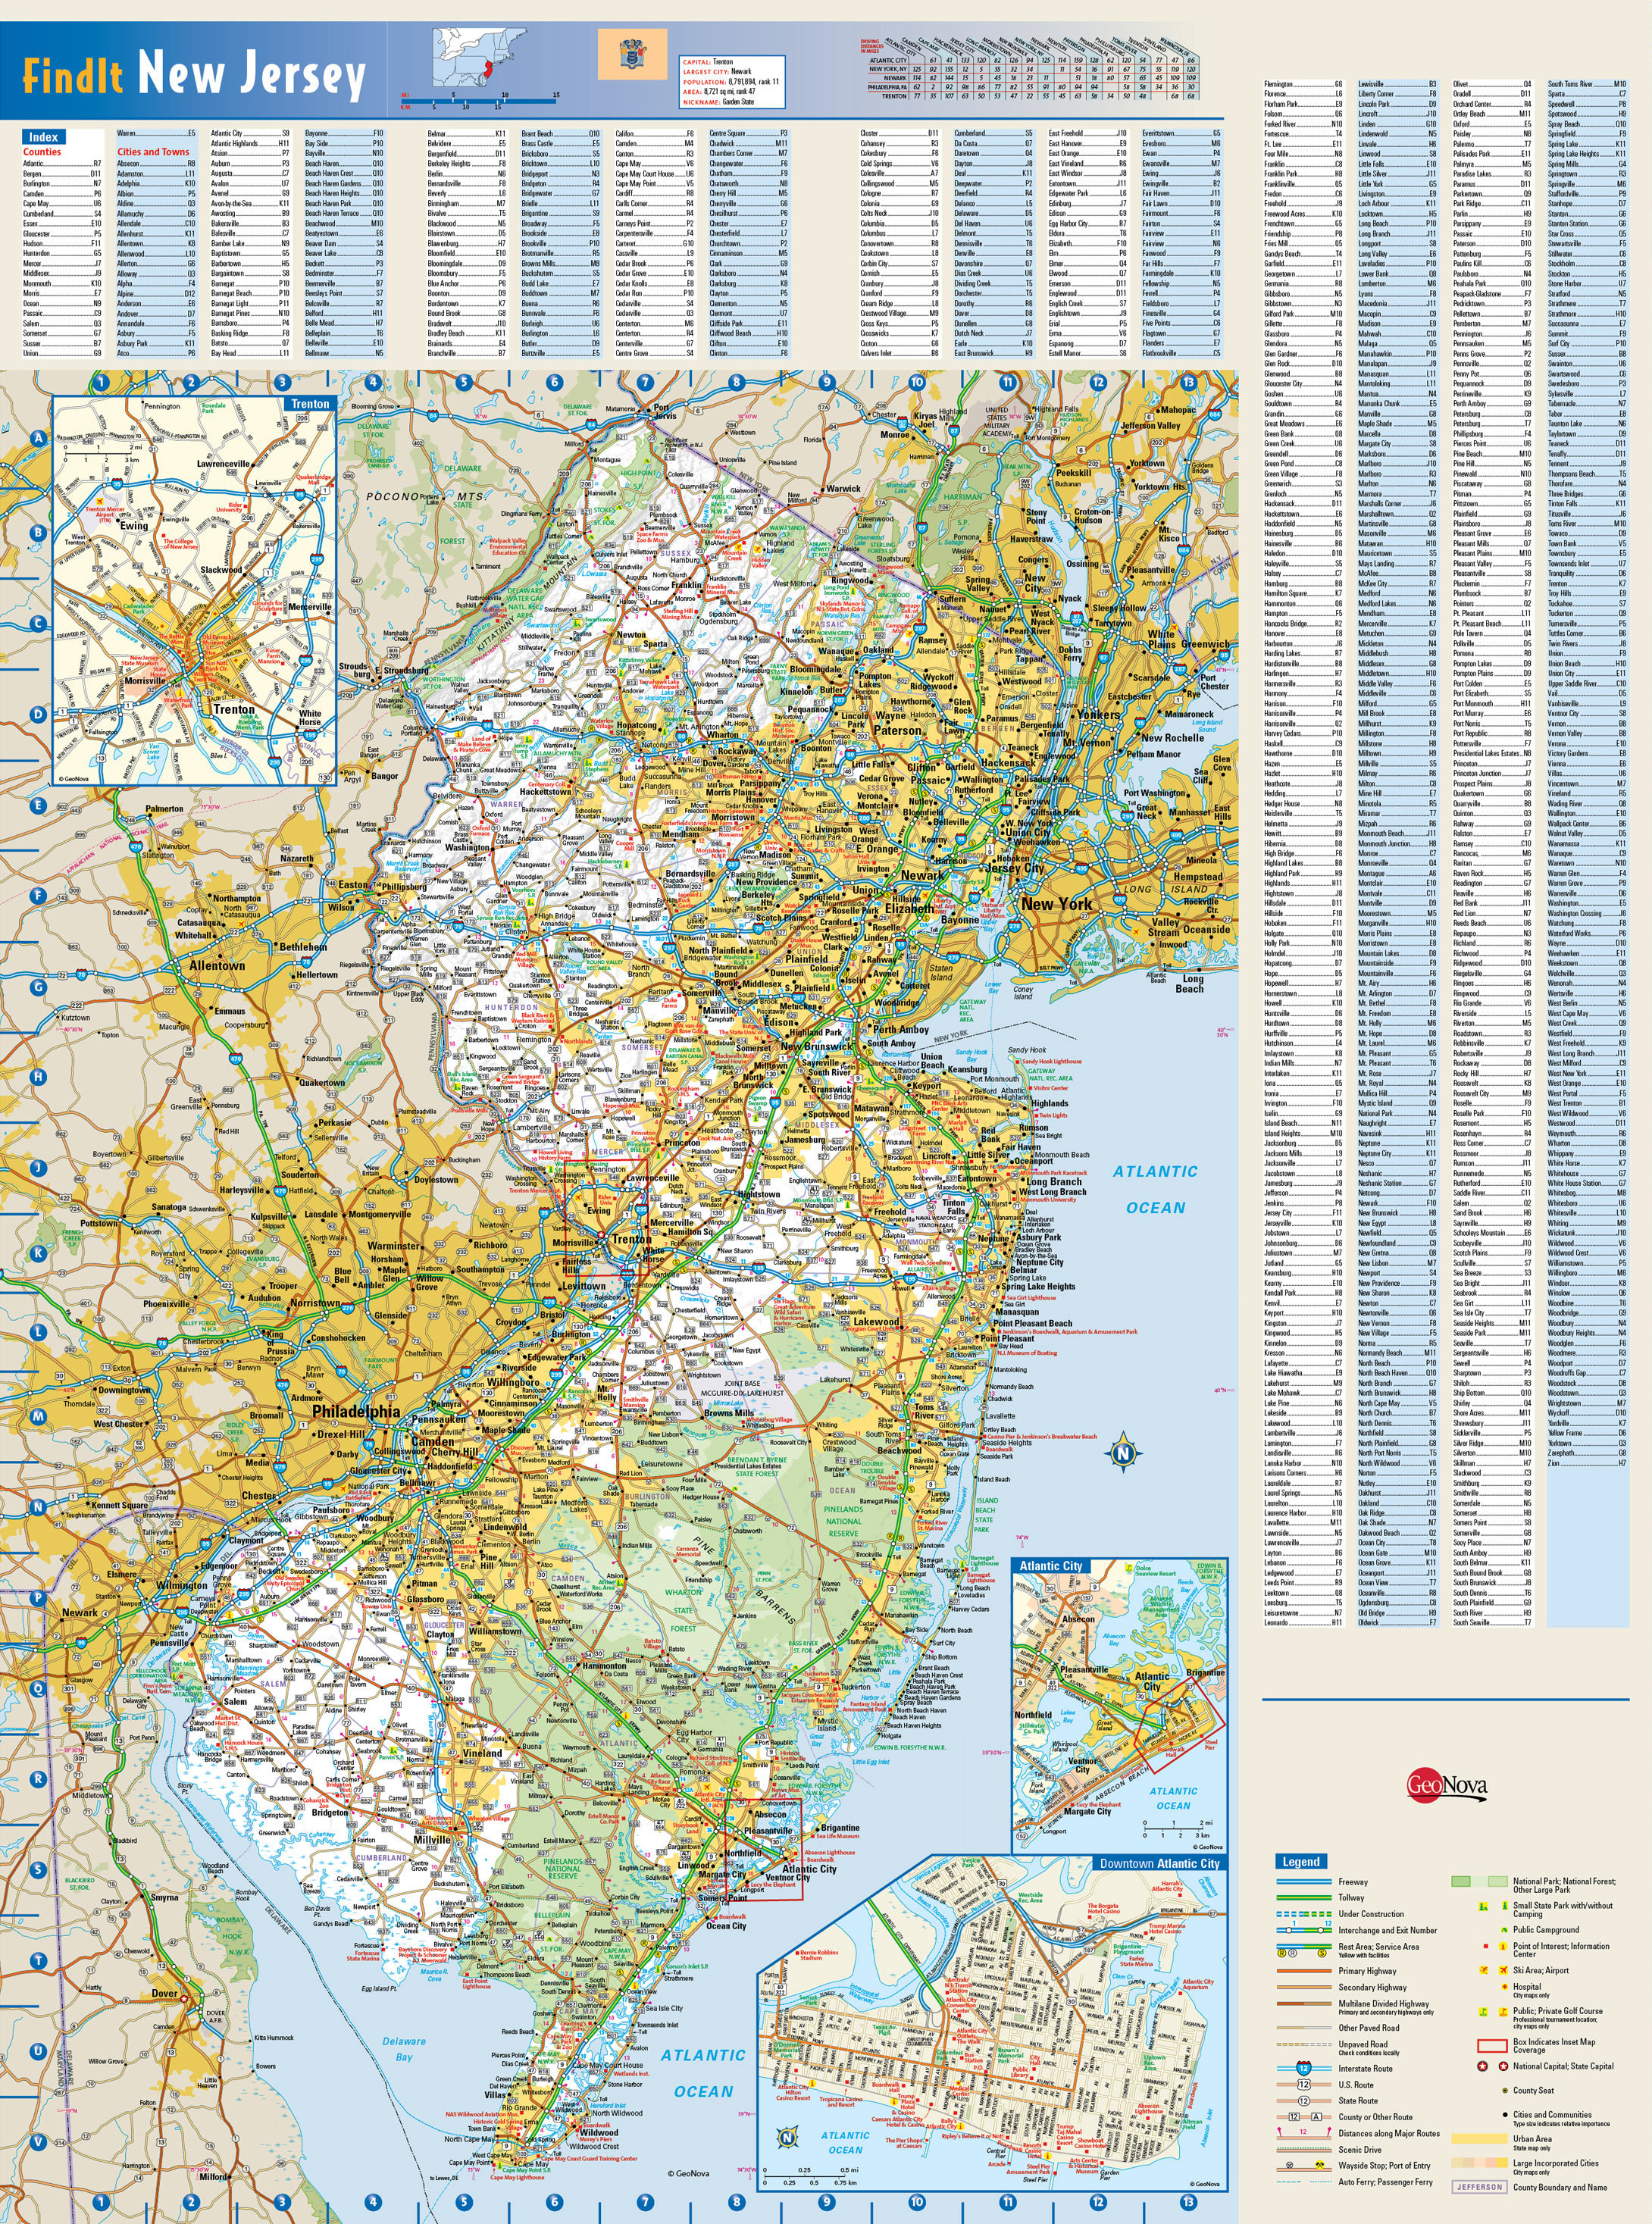 Large Detailed Roads And Highways Map Of New Jersey State With All - Detailed map of nj